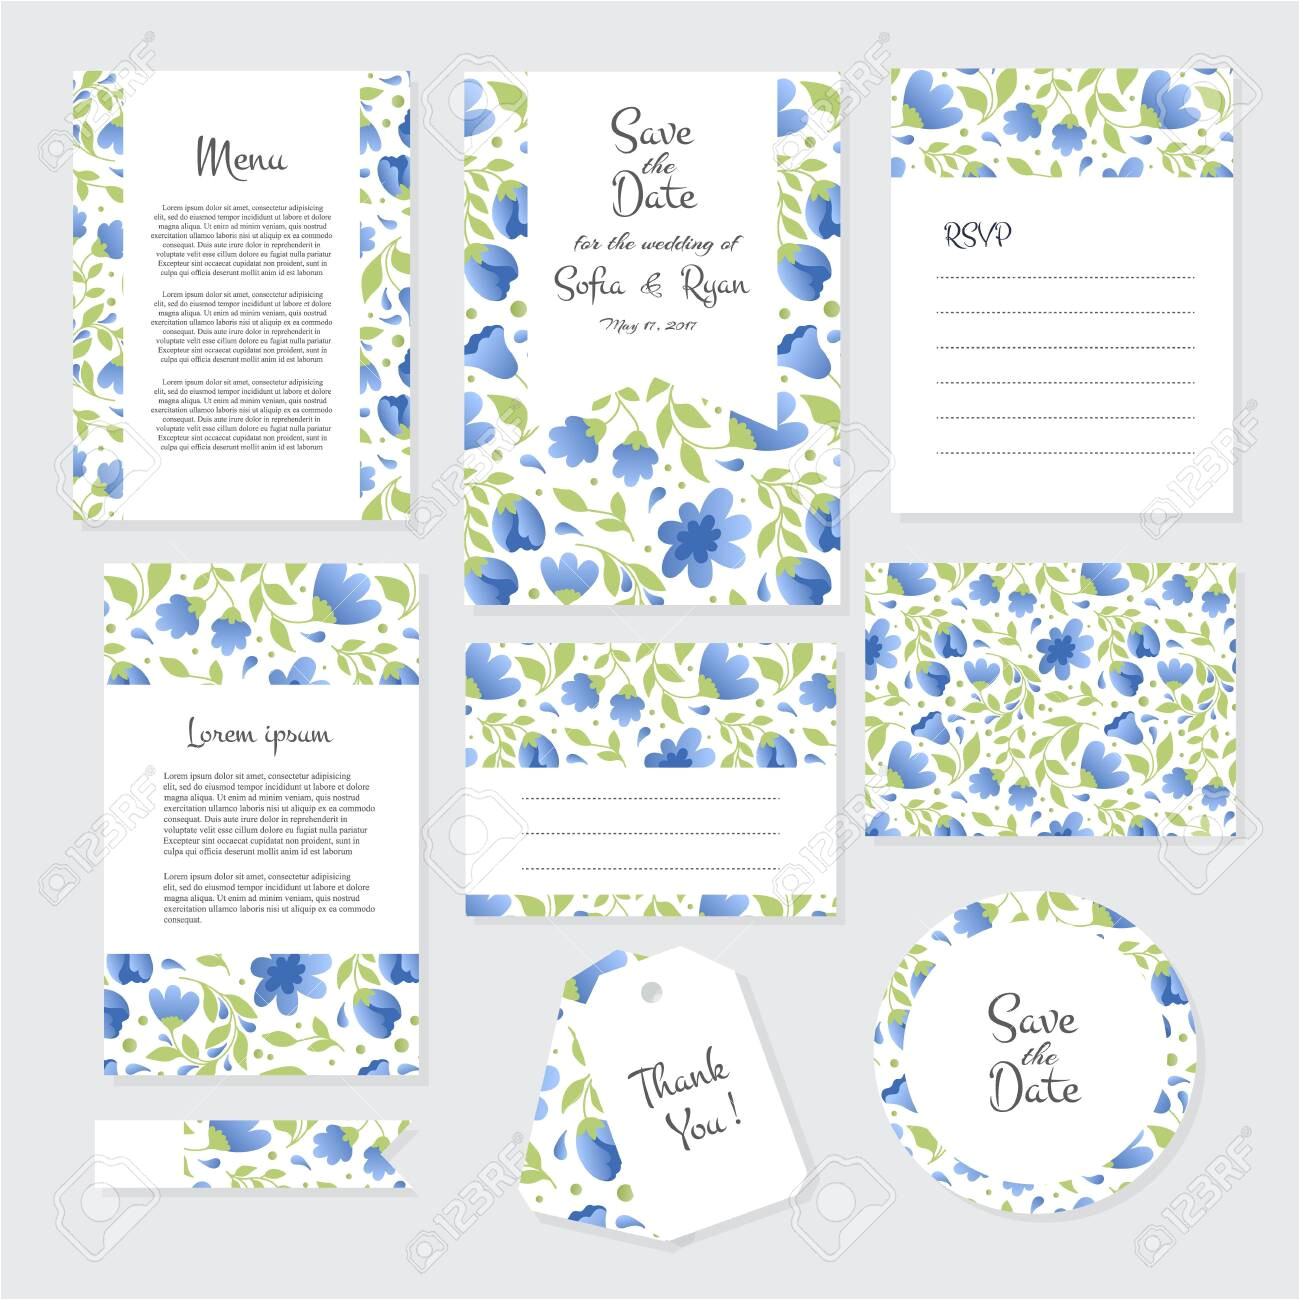 123397476 vector gentle wedding cards template with flower design invitation or save the date rsvp menu and th jpg